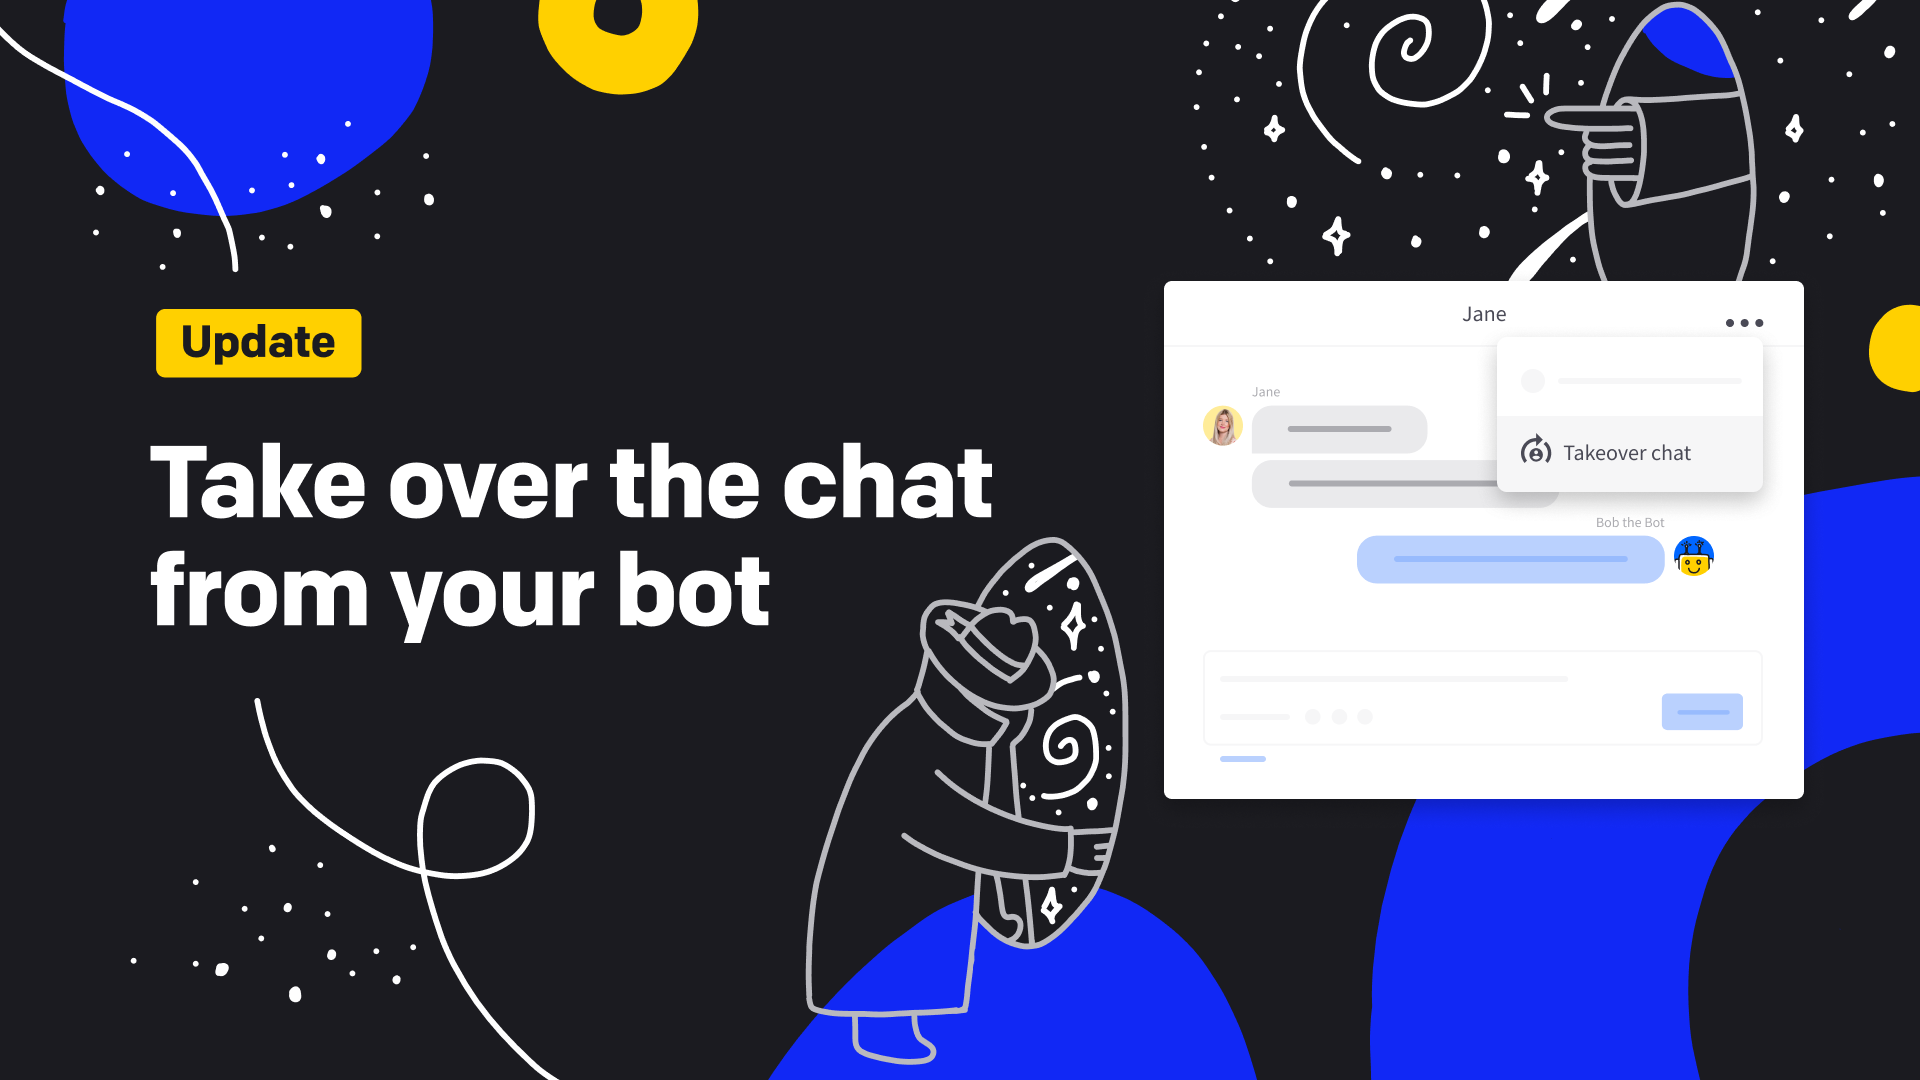 Take over the chat from your bot